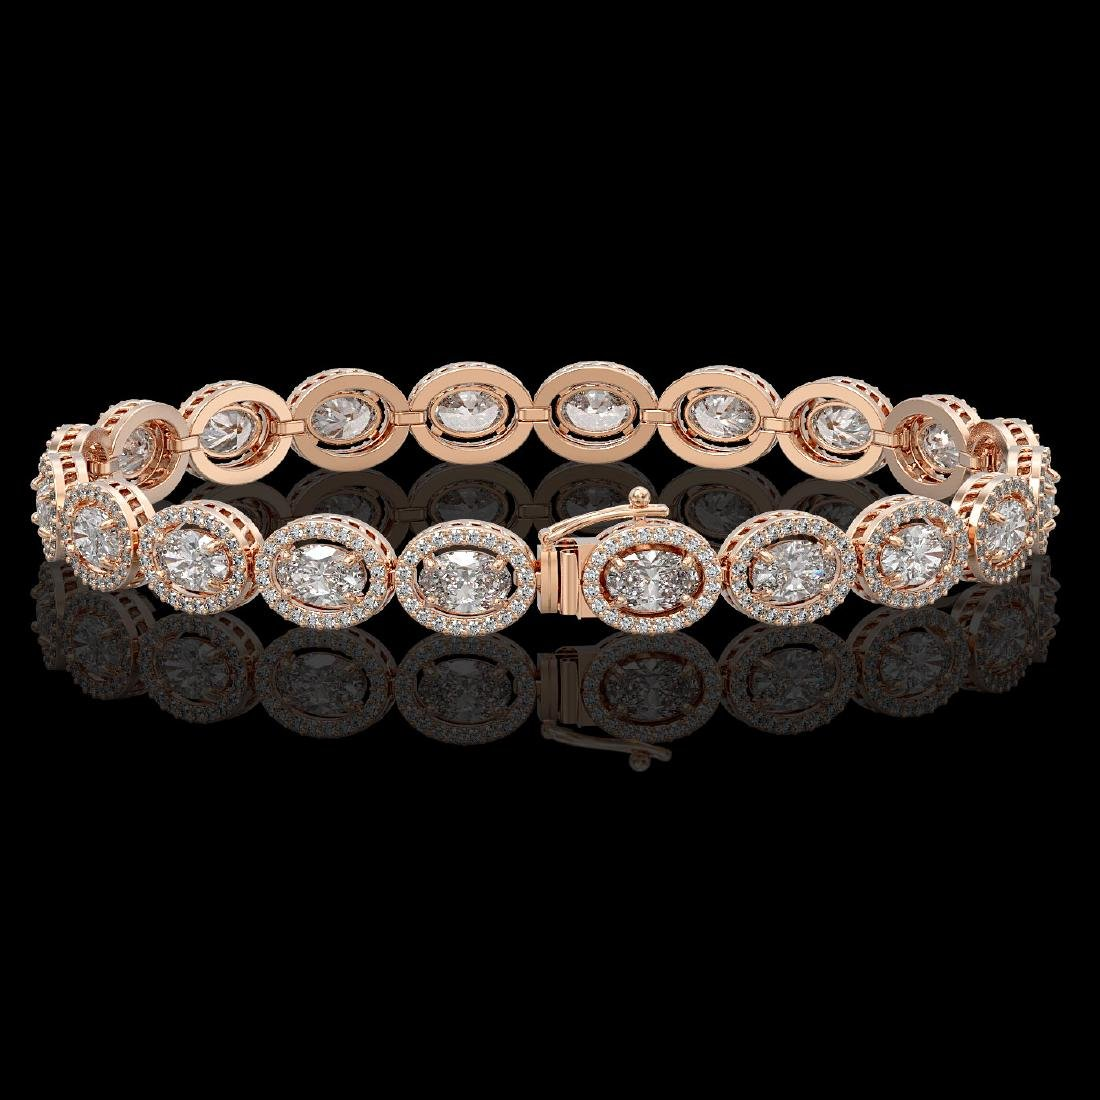 13.25 CTW Oval Diamond Designer Bracelet 18K Rose Gold - 2